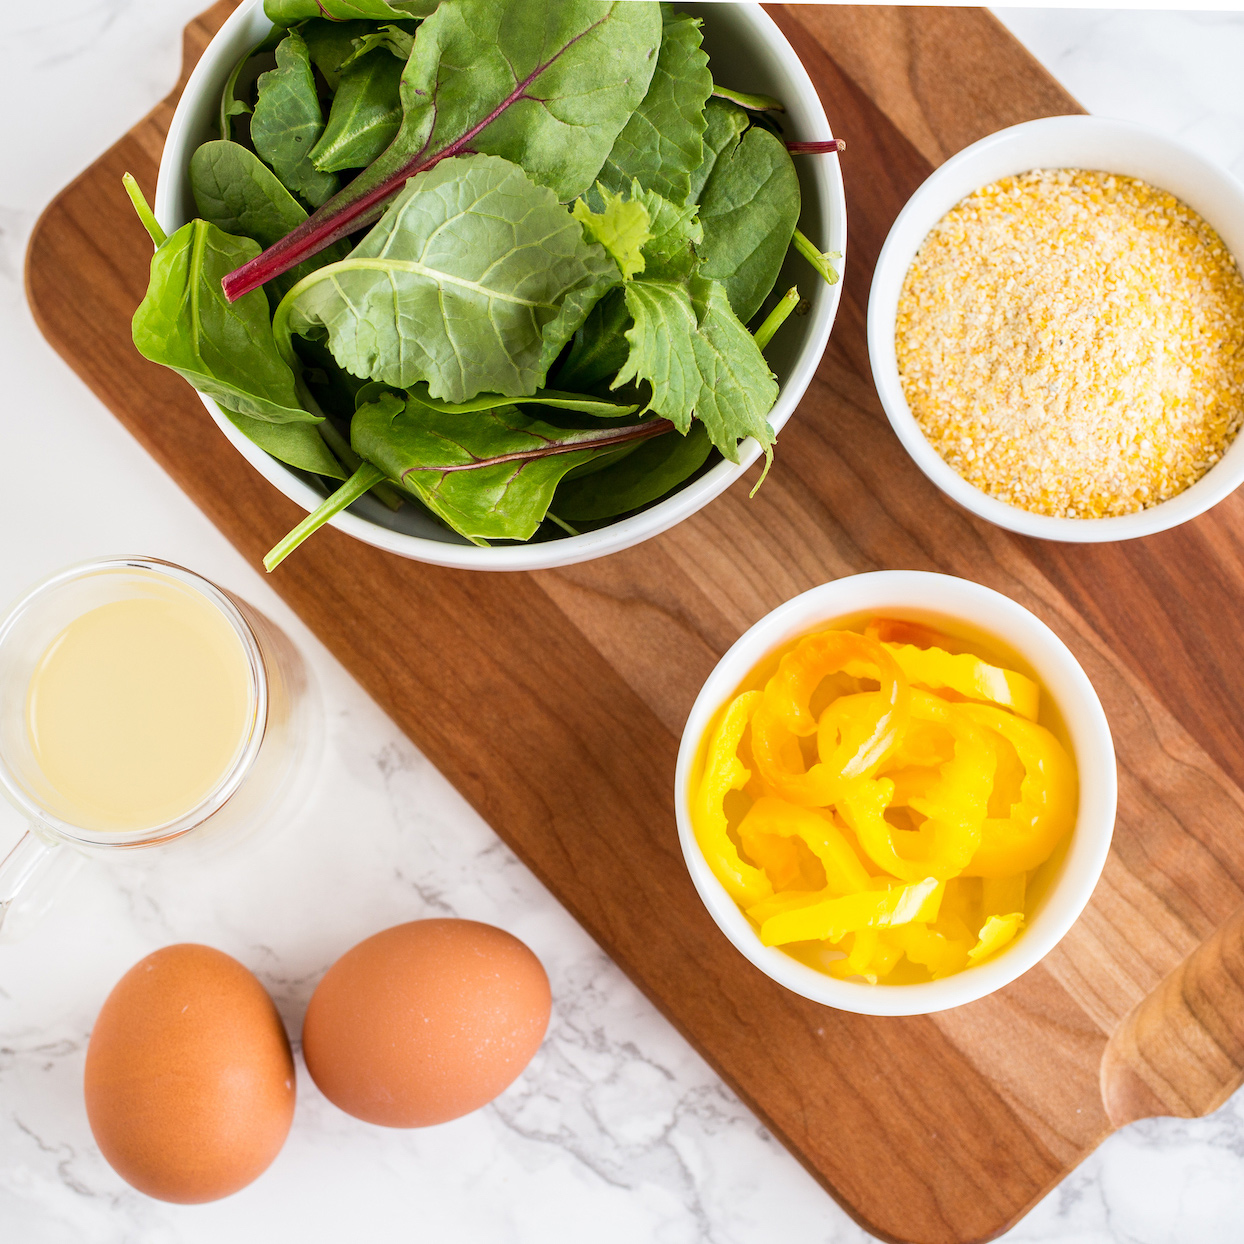 Eggs. salad greens, peppers, and polenta